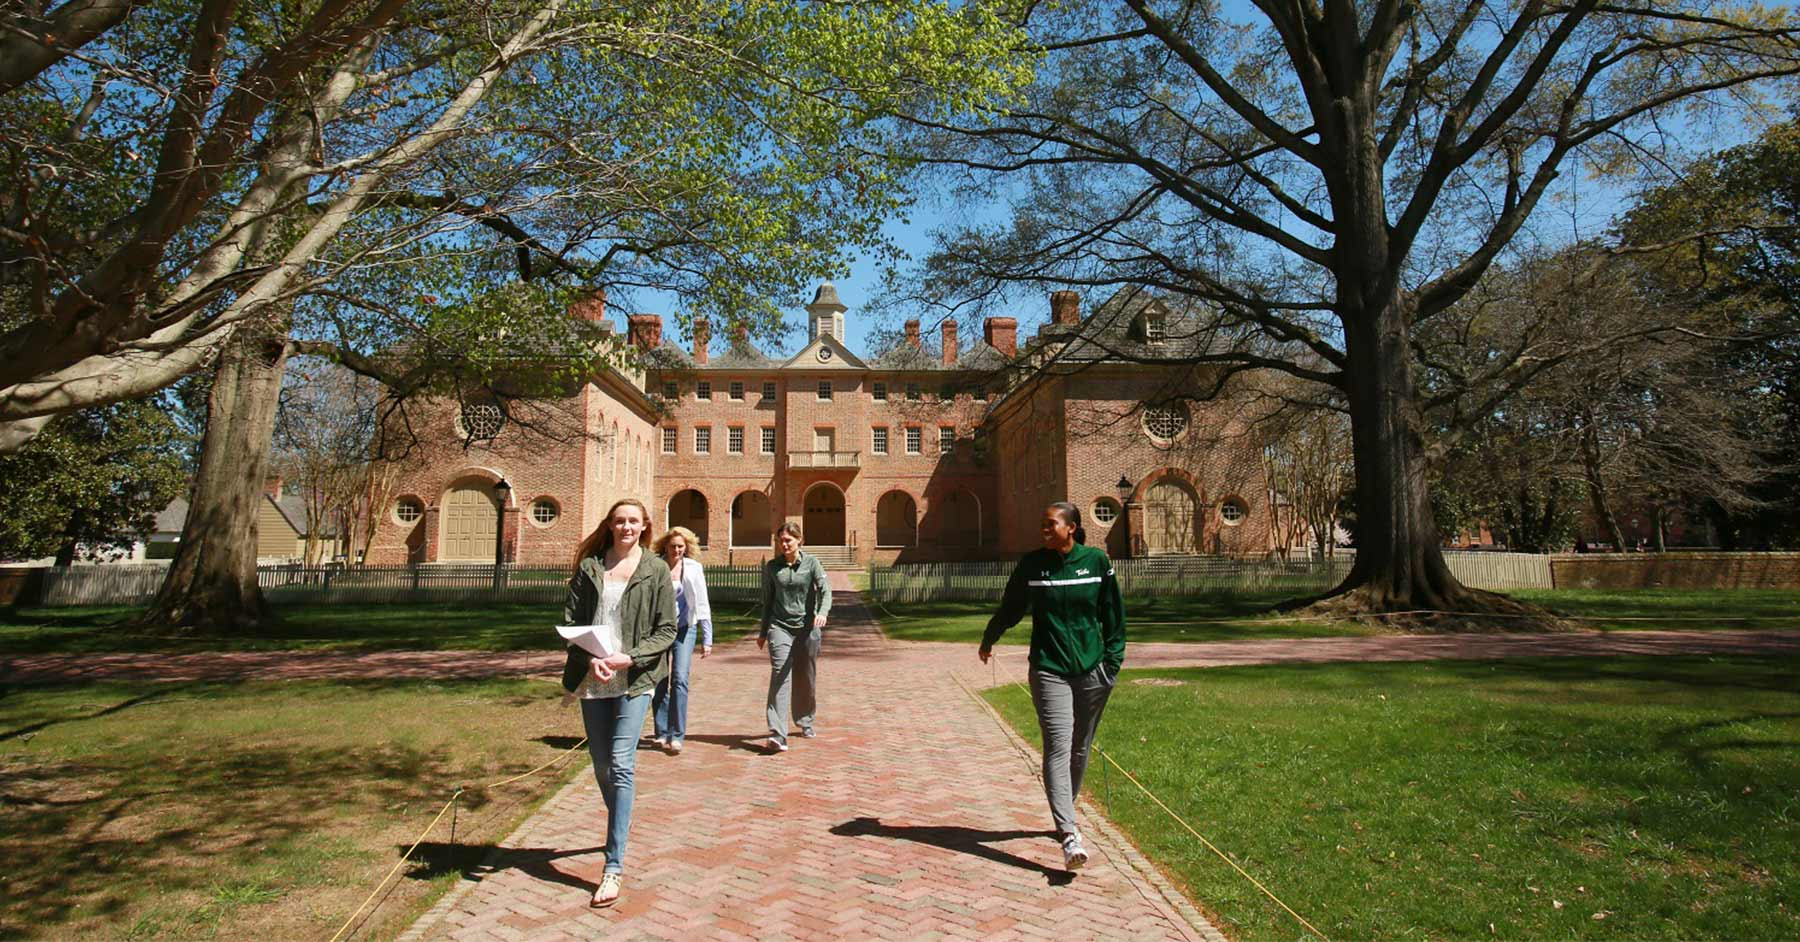 Grant Champ Is William & Mary's New Provost